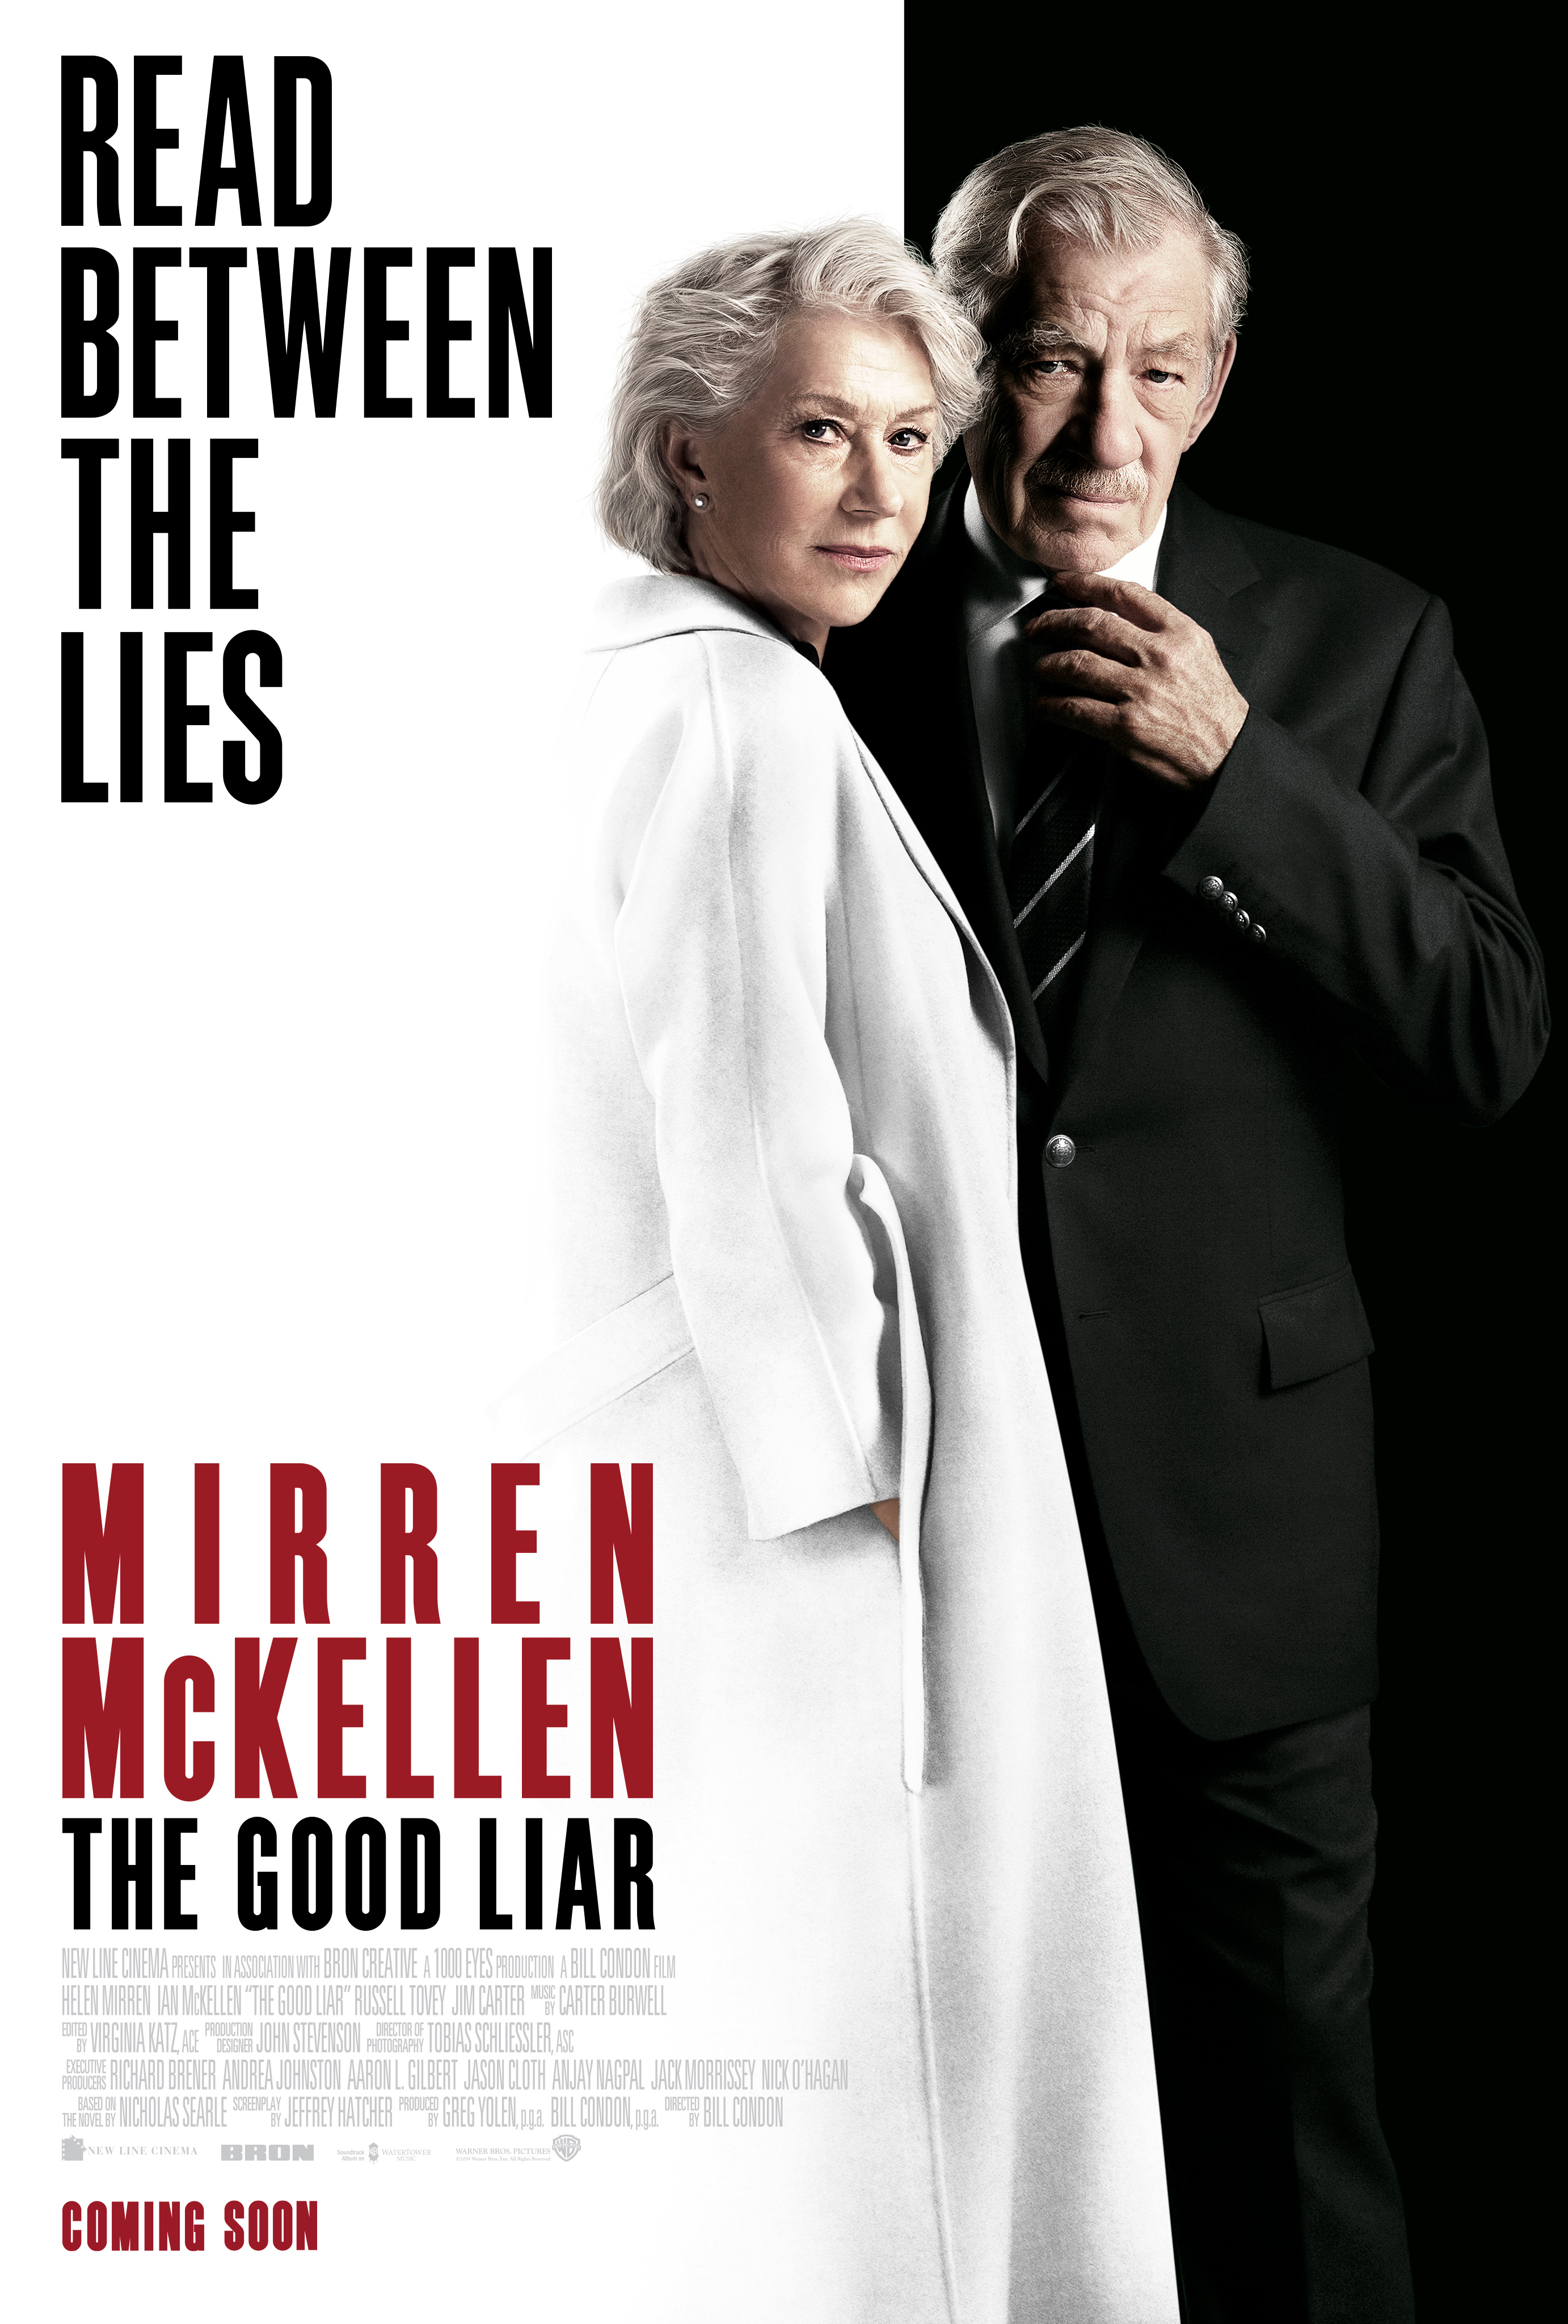 The Good Liar trailer features Helen Mirren and Ian McKellen for the first time